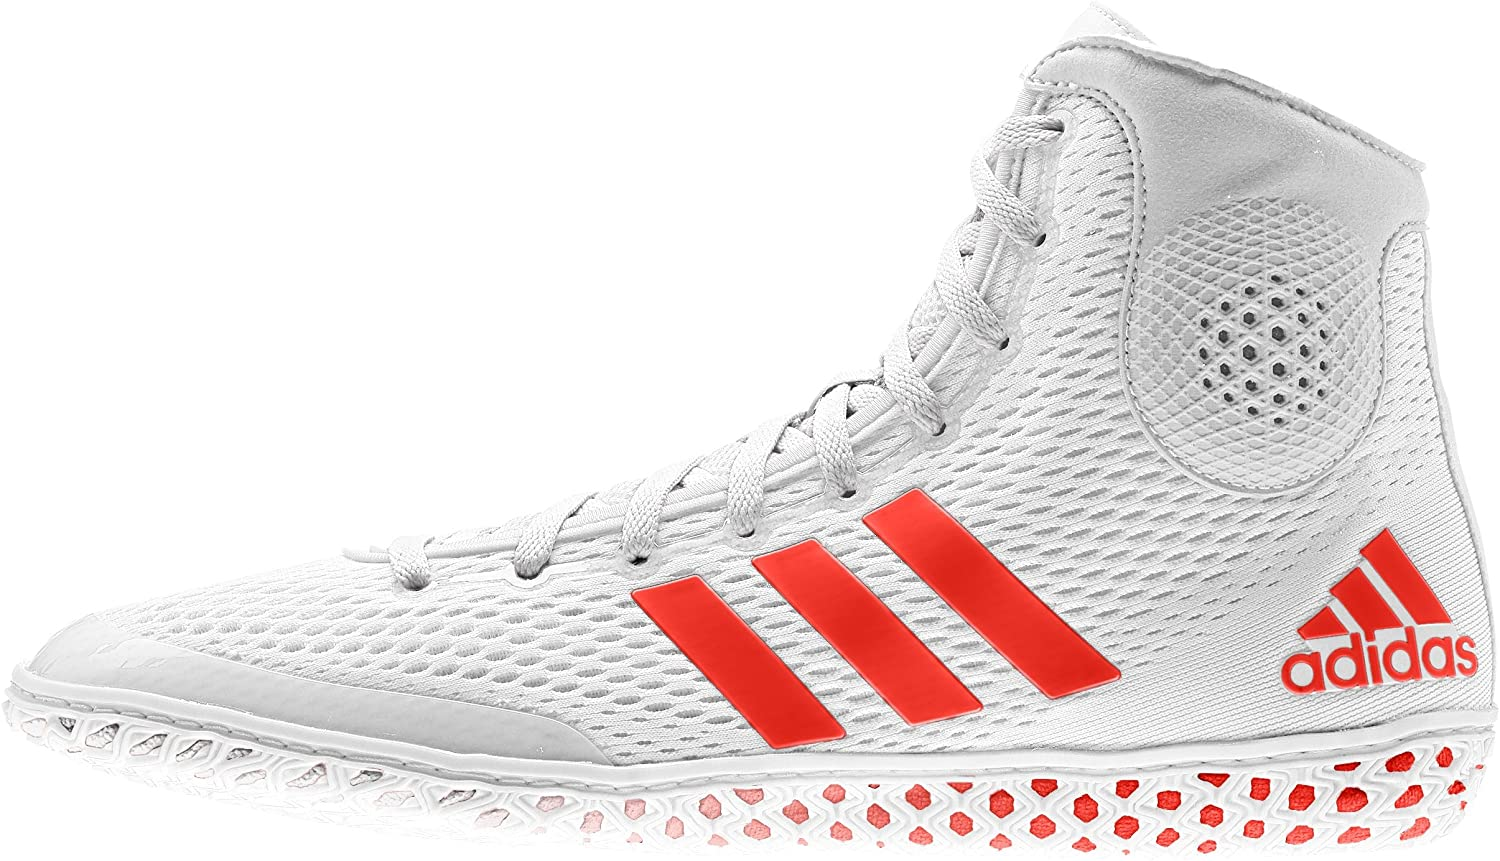 Adidas Tech Fall 16 Rio Wrestling Shoes White-Red